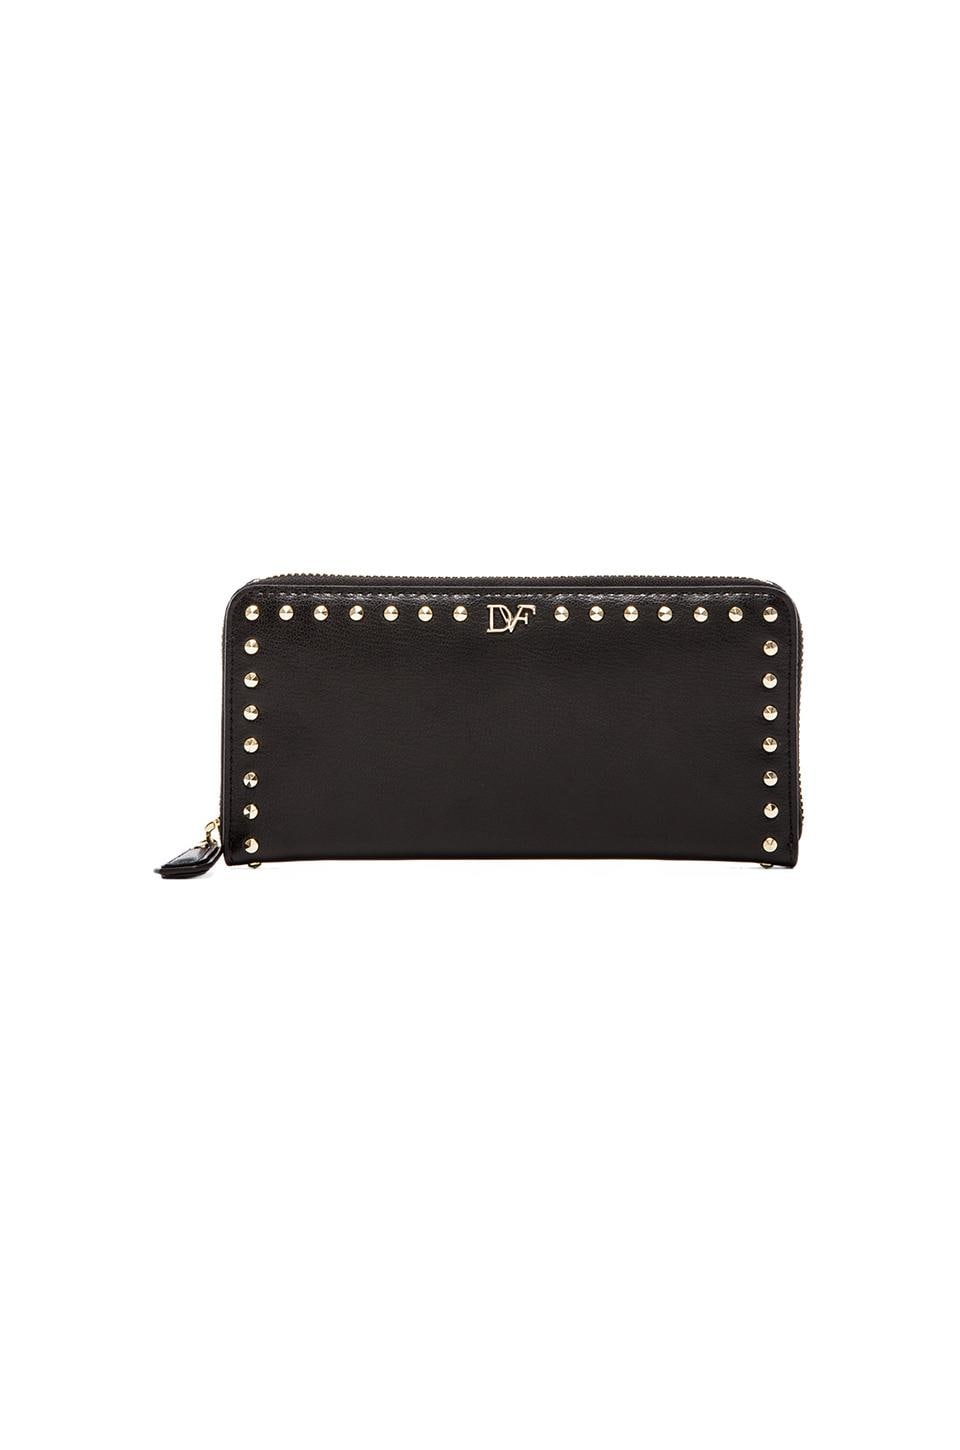 Diane von Furstenberg Studded Leather Zip Around Wallet in Black